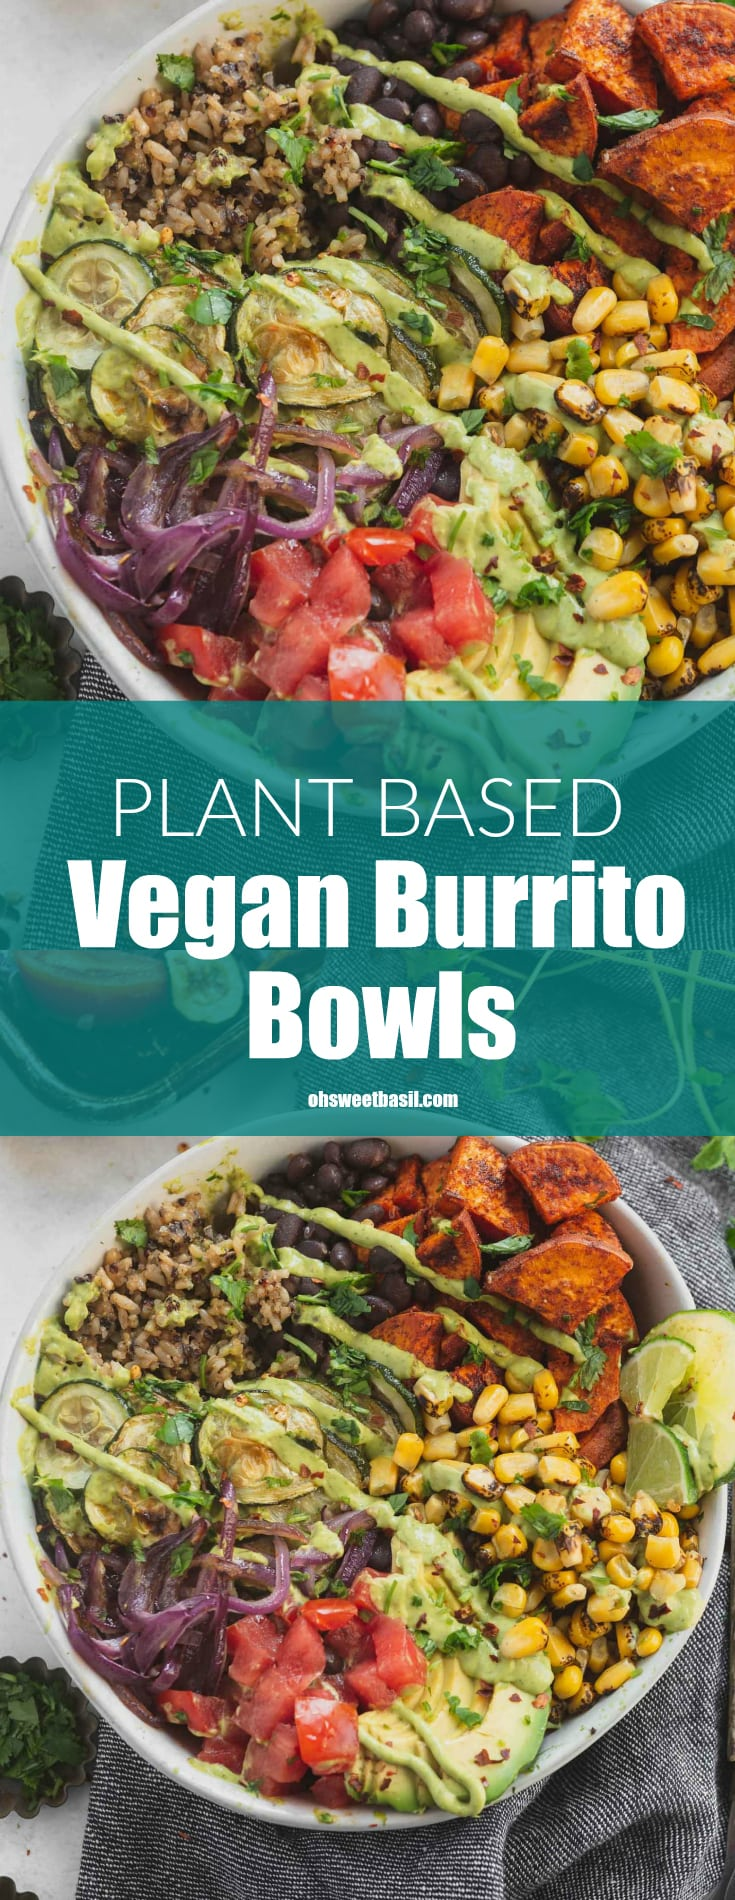 A plant based, vegan burrito bowl filled with tomatoes, avocados, red onion, roasted corn, sweet potatoes, black beans and brown rice and quinoa.